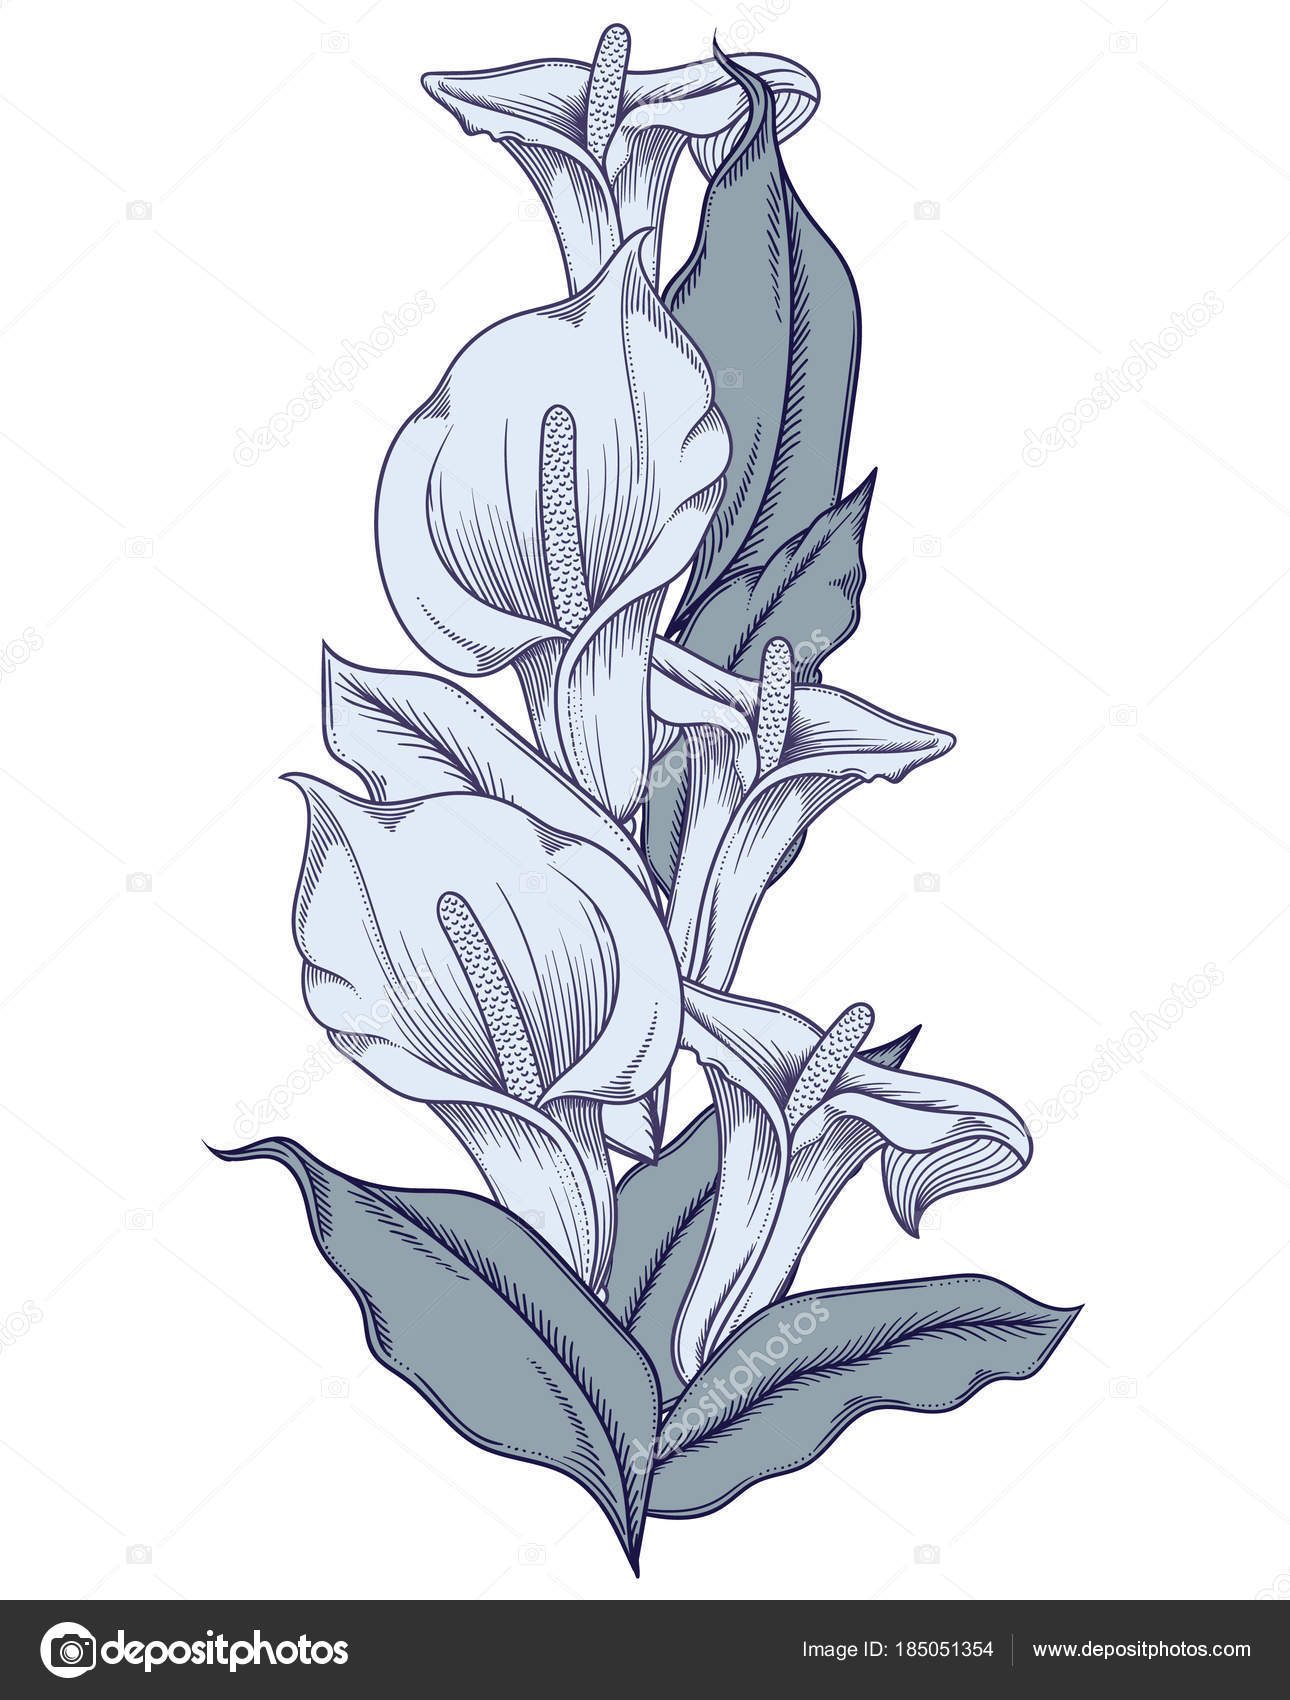 Hand Drawn Blue Blooming Callas Flowers Detailed Illustration Of